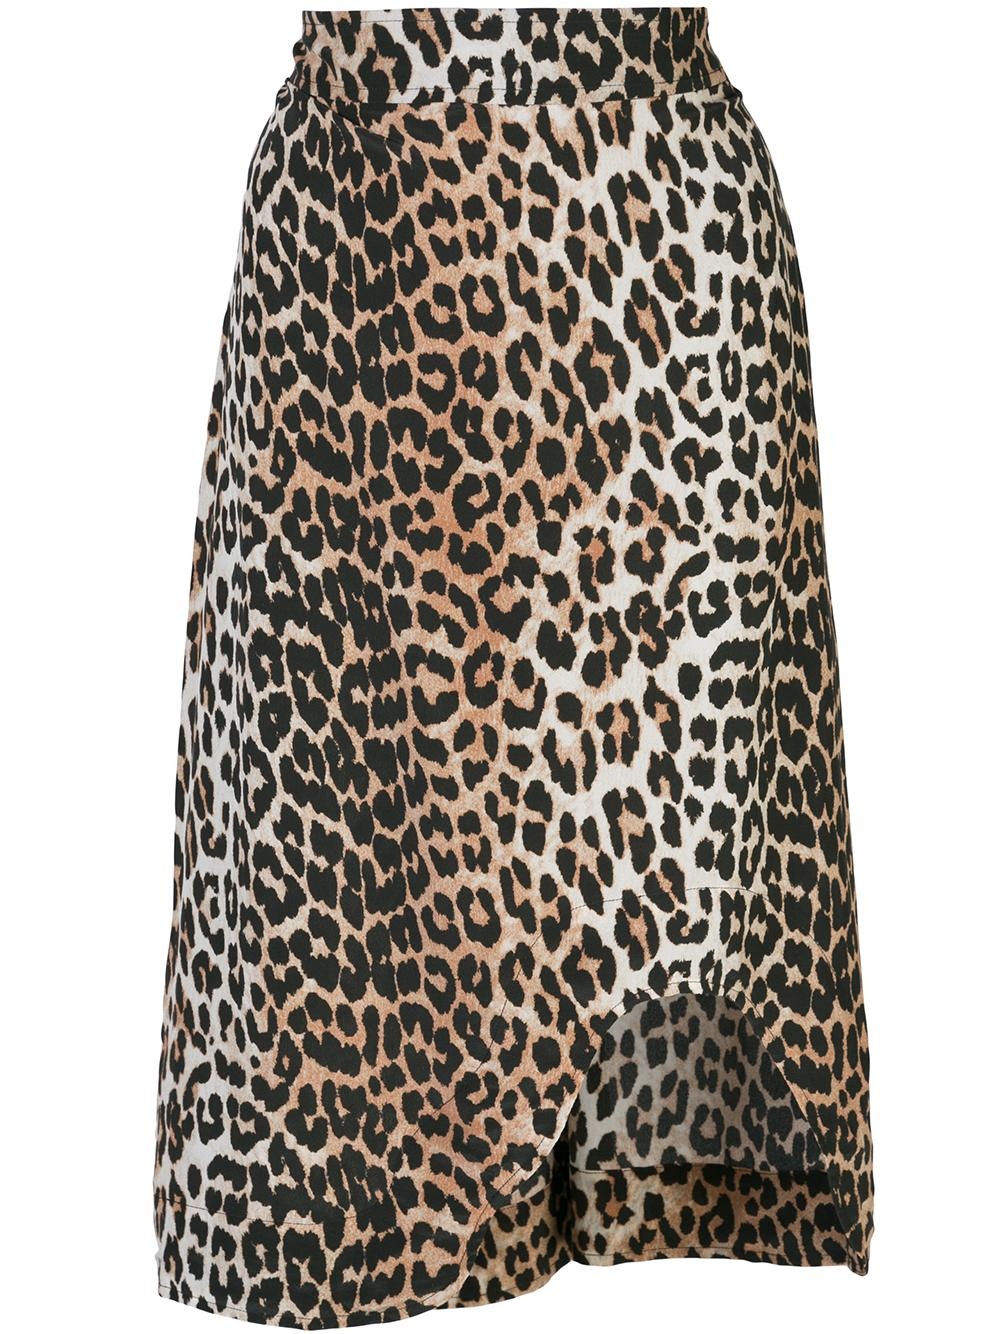 Animal Print Silk Mix Pencil Skirt